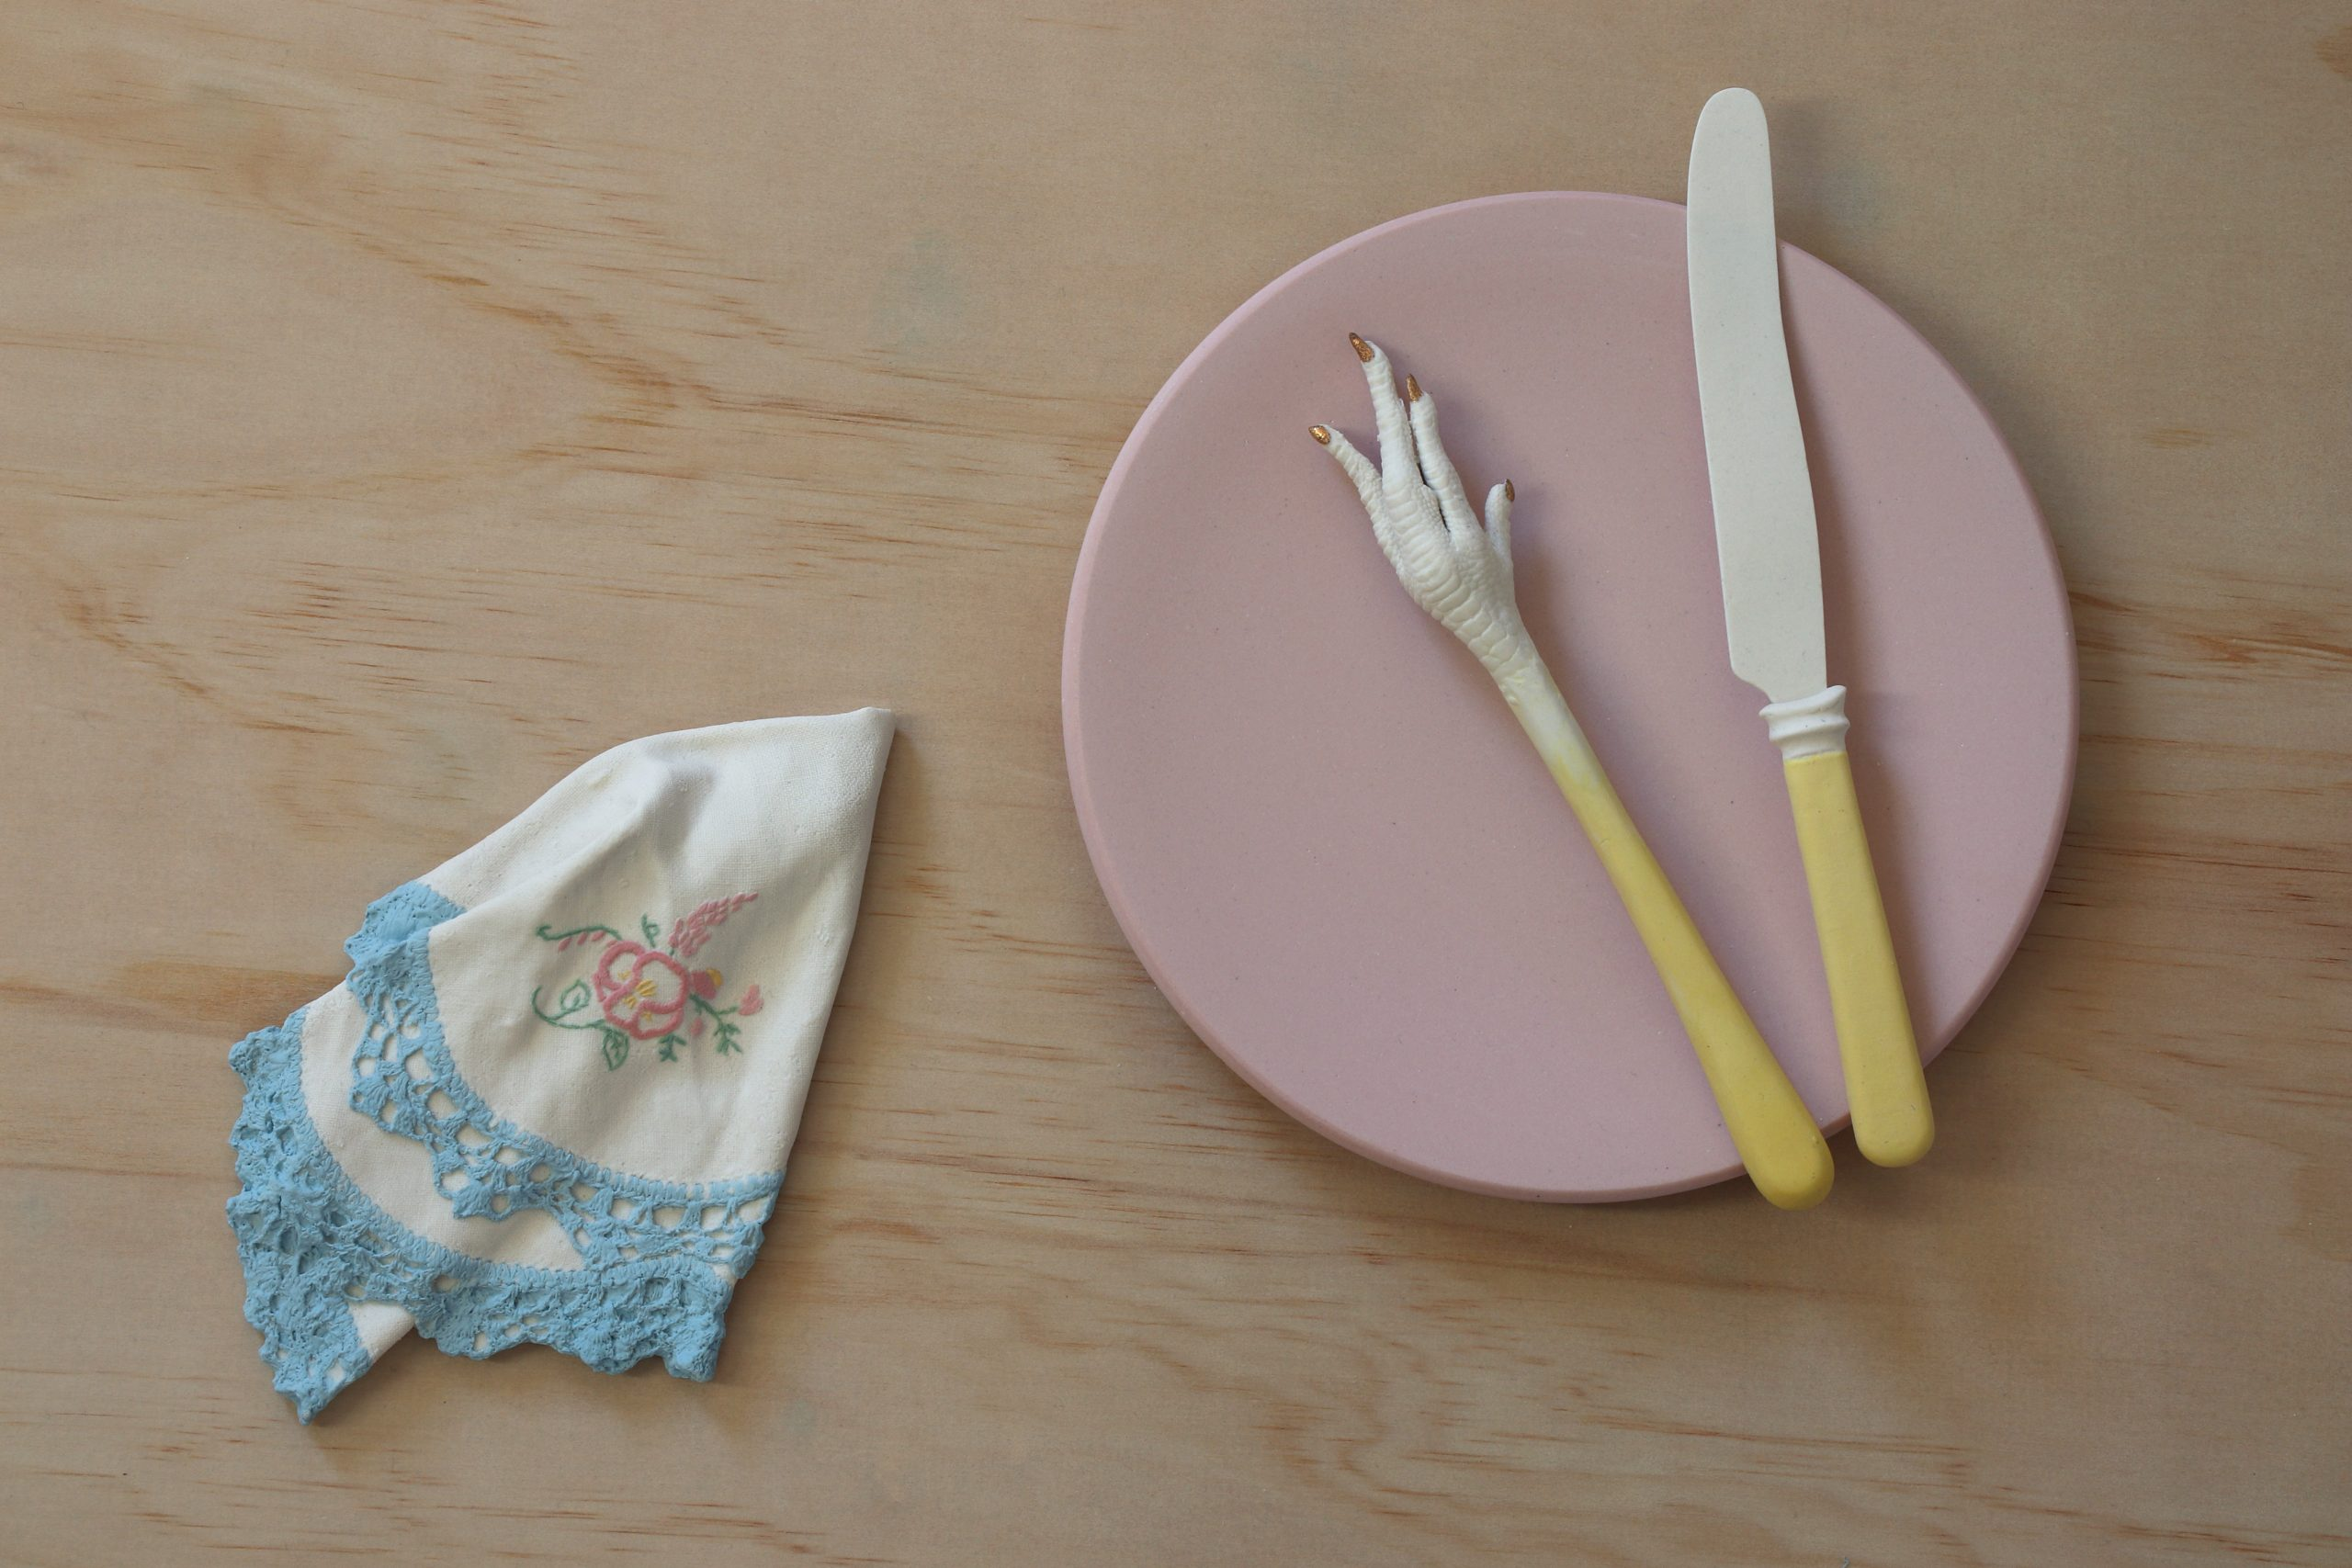 Sculpture with mid century porcelain napkin, chicken foot fork, knife and plate